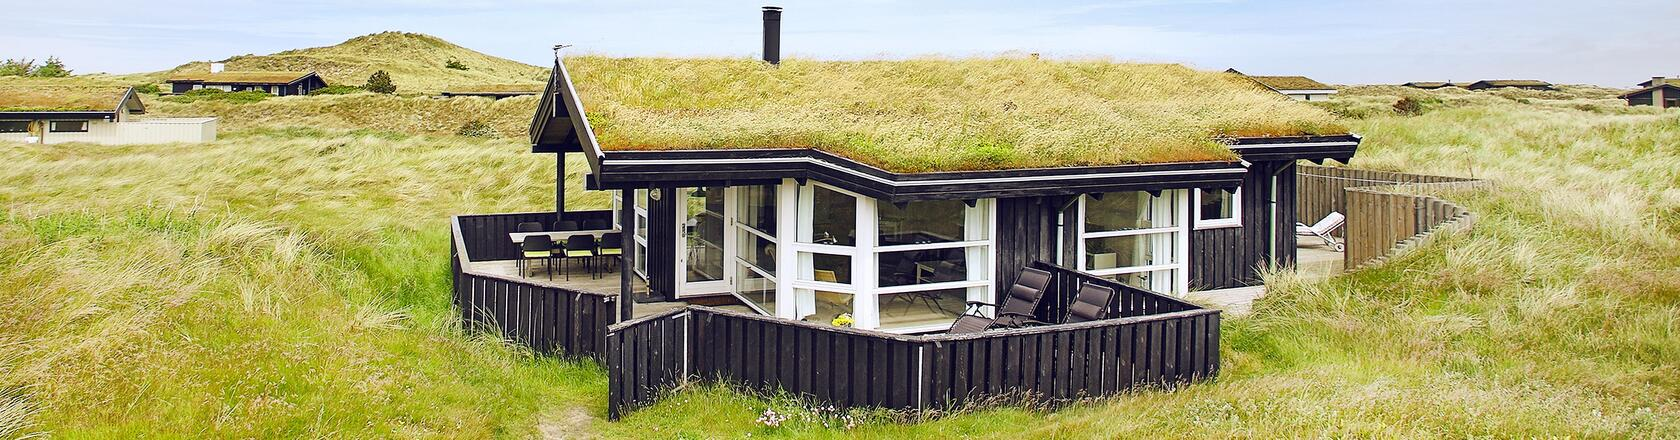 Holiday home in Skagen - choose between a variety of houses